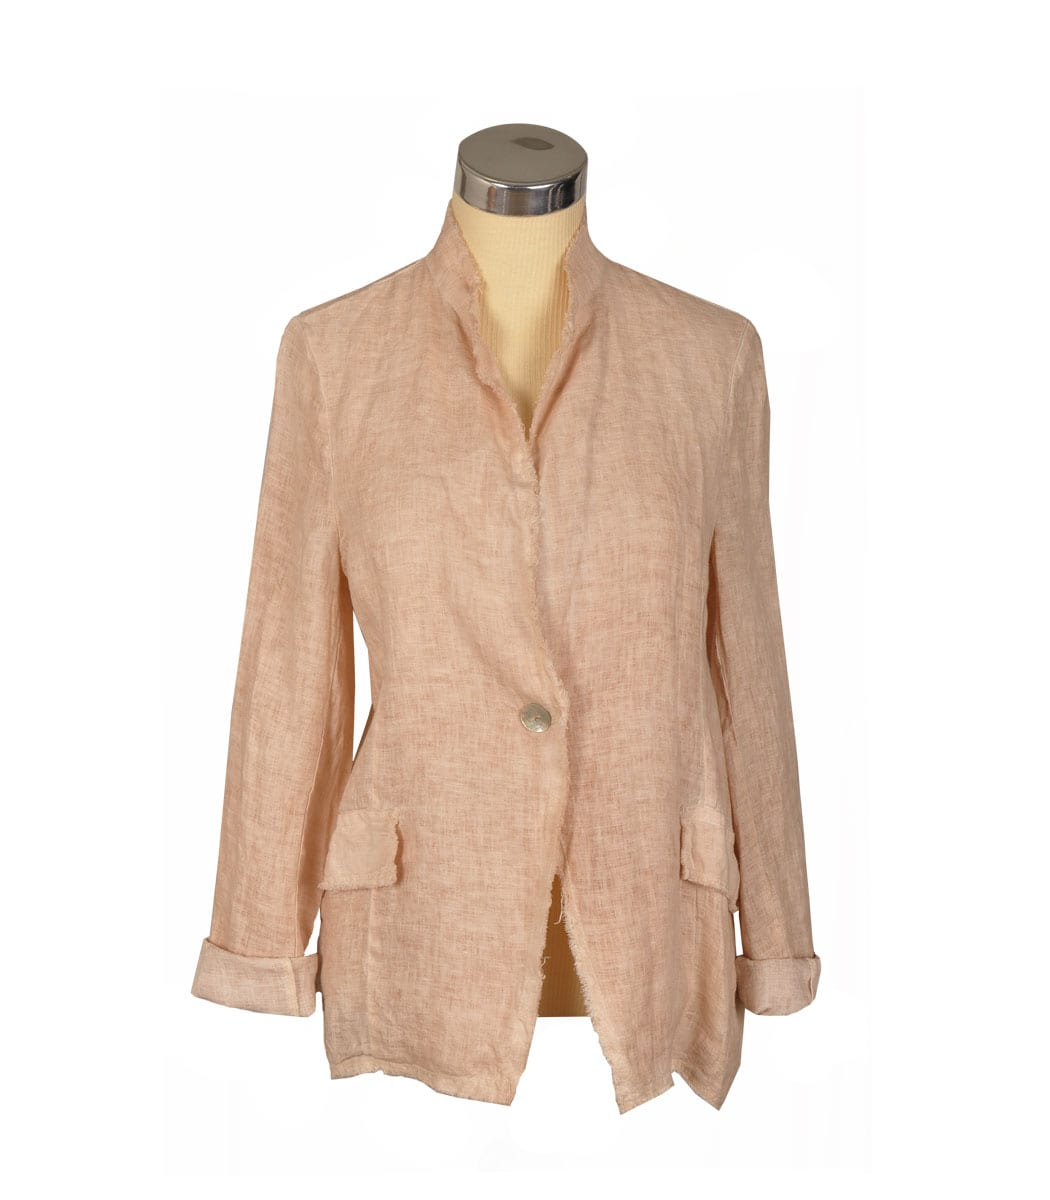 Sequin star linen jacket